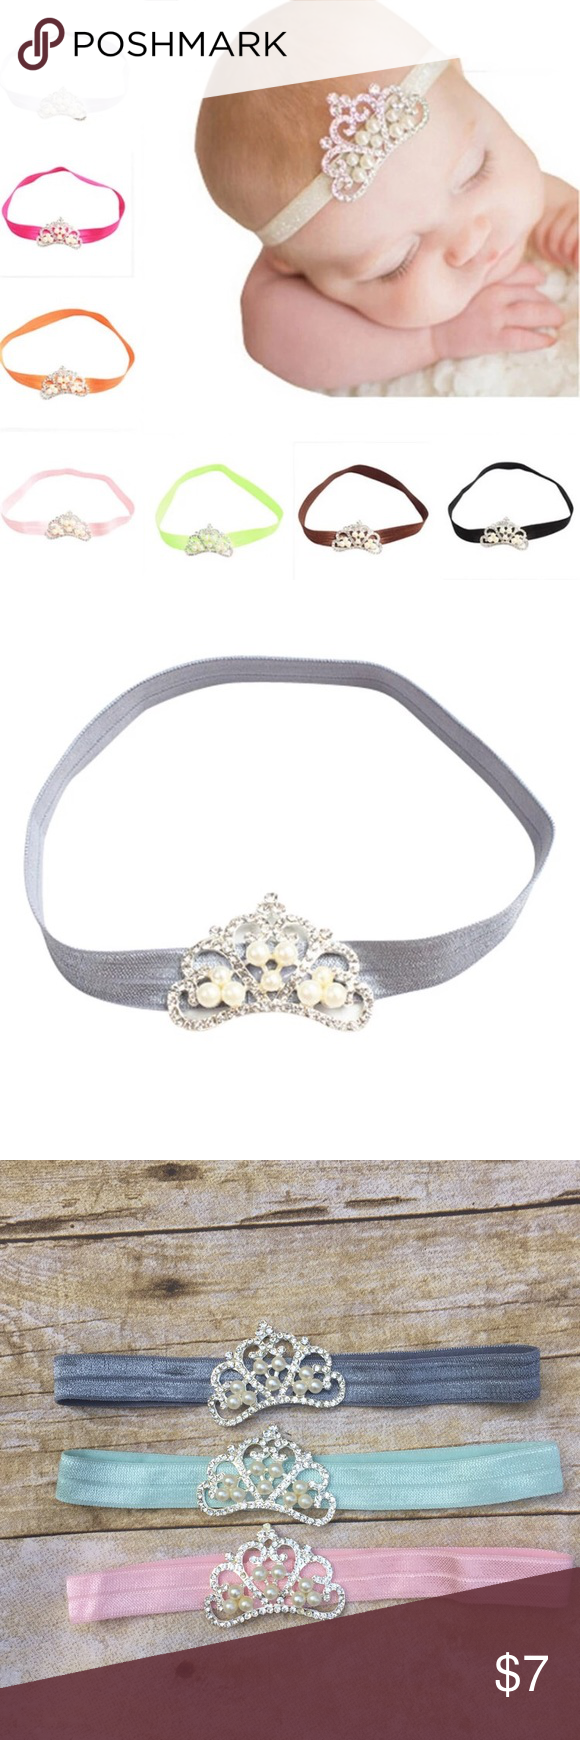 Princess headband These are just too sweet! Gorgeous princess baby girl crystal pearl headband. Available in the 3 colors shown above. Perfect for that photoshot! Accessories Hair Accessories